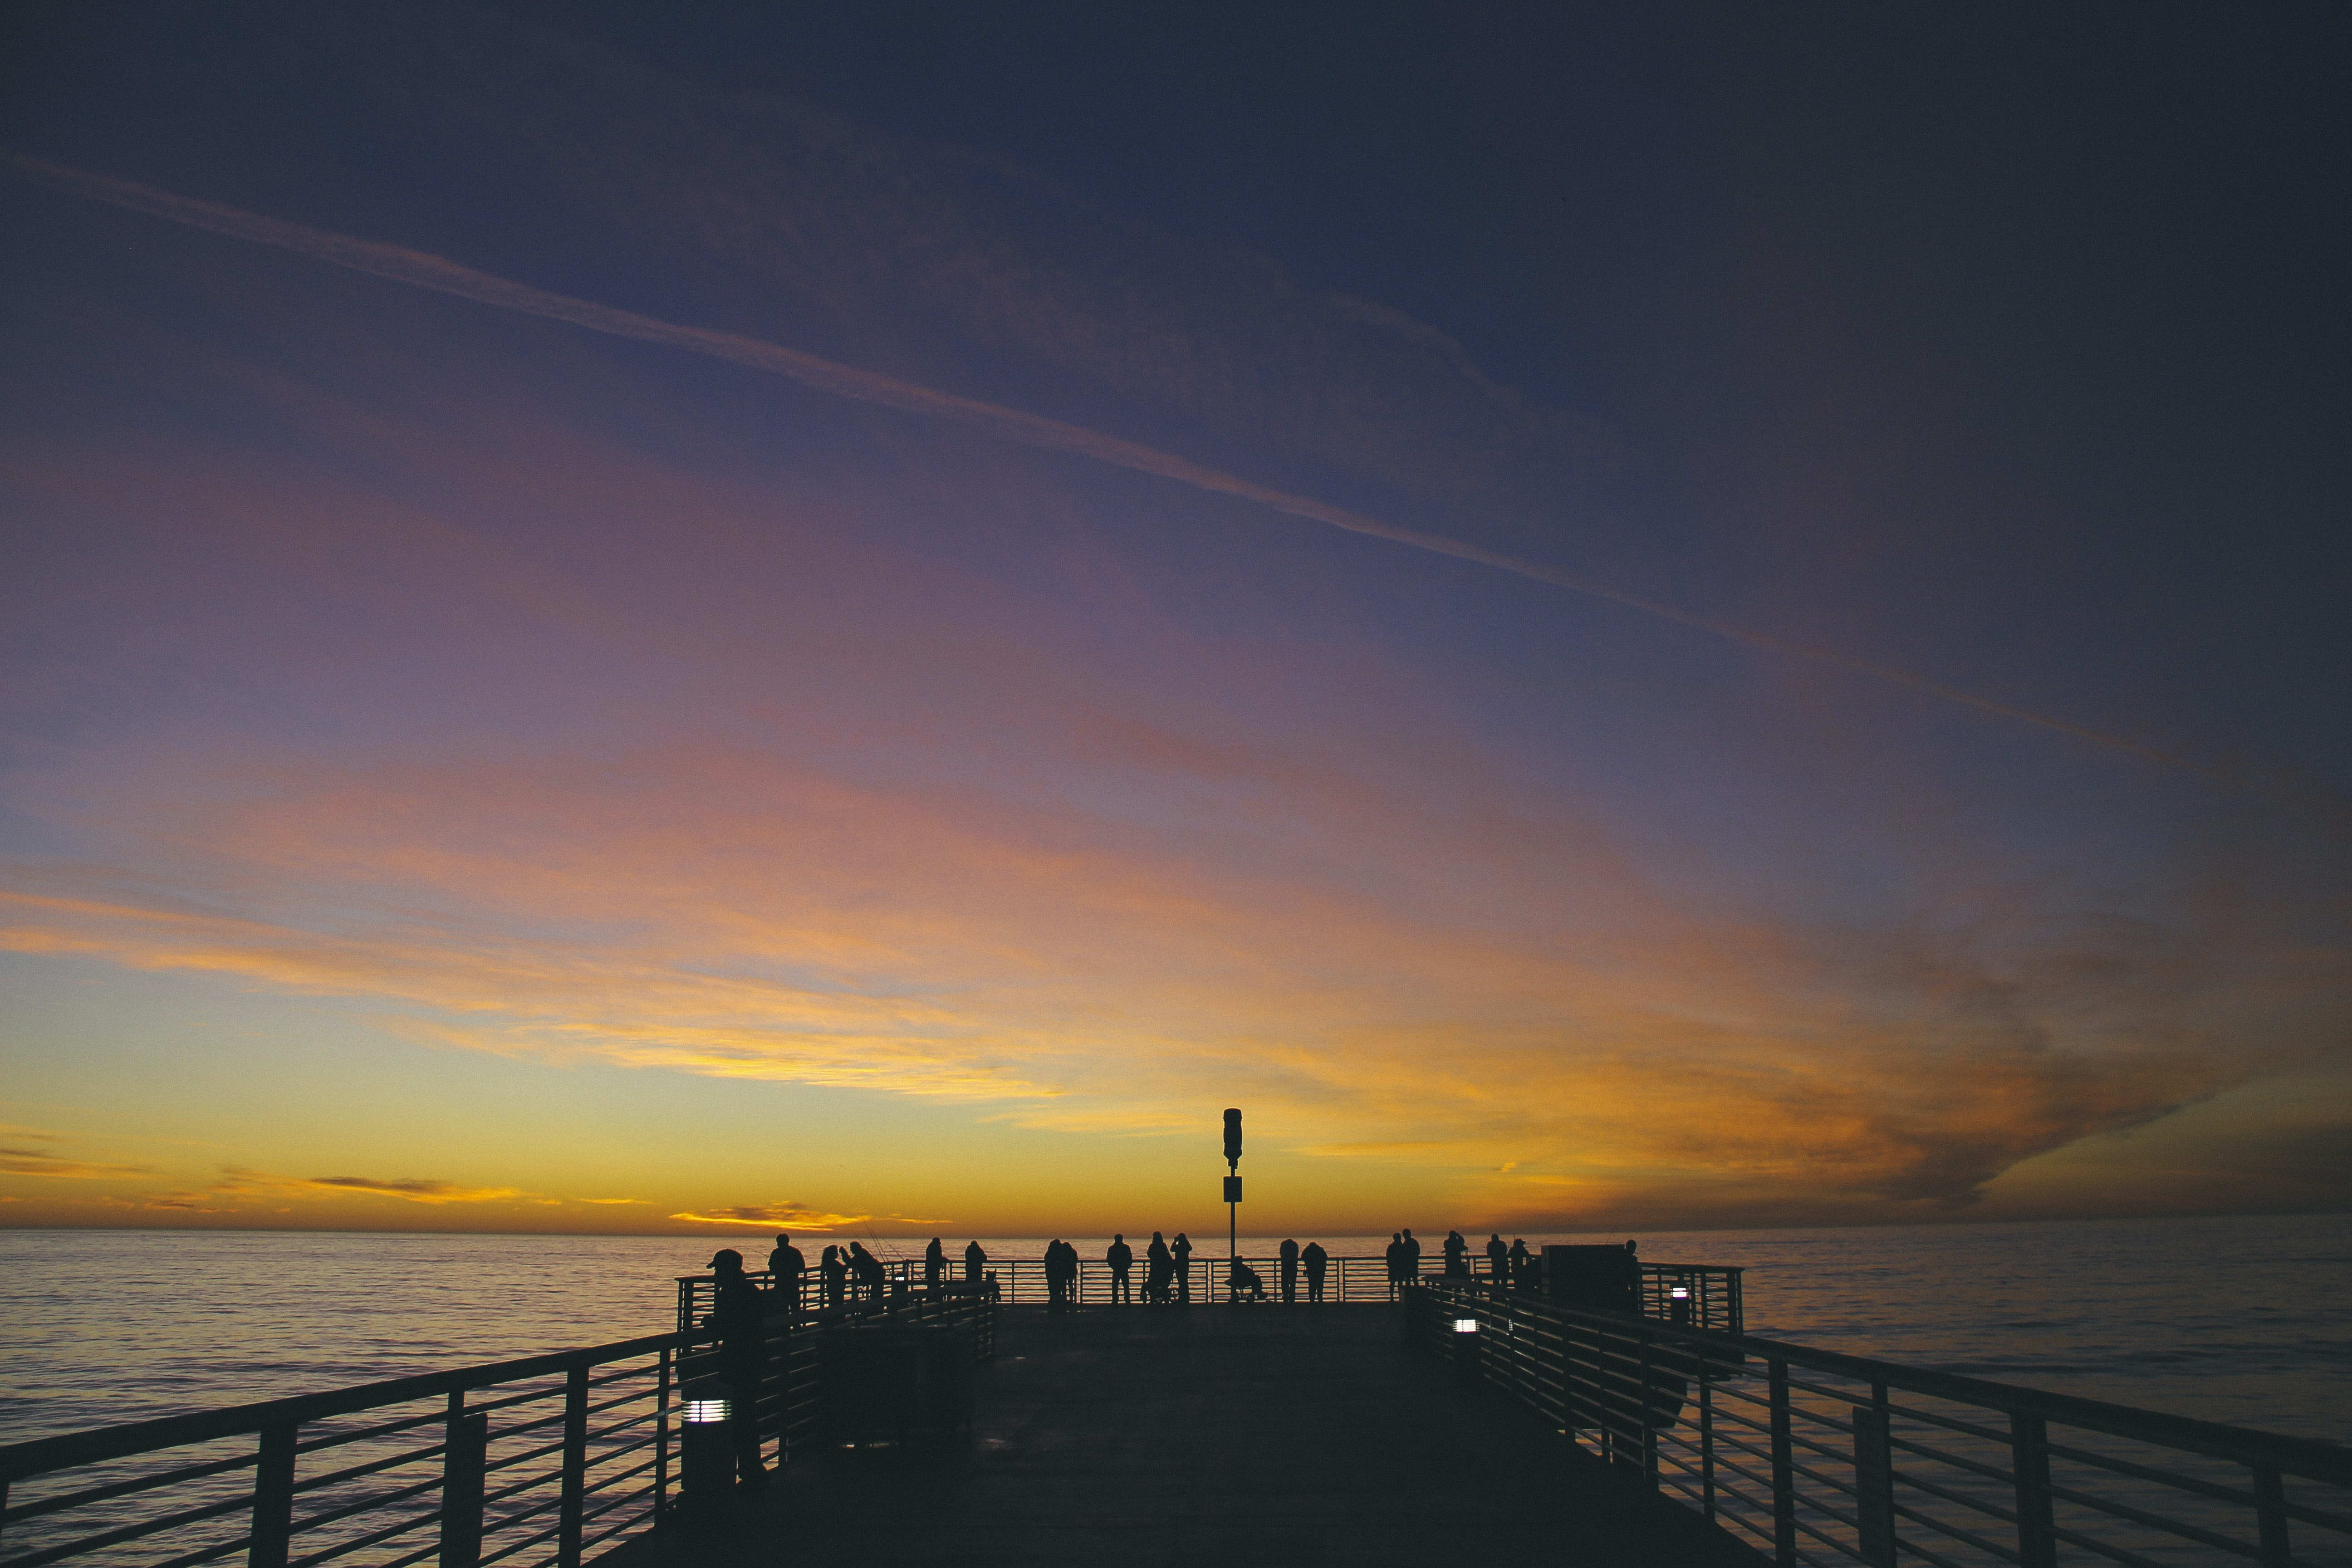 silhouette of people on dock near body of water during golden hour